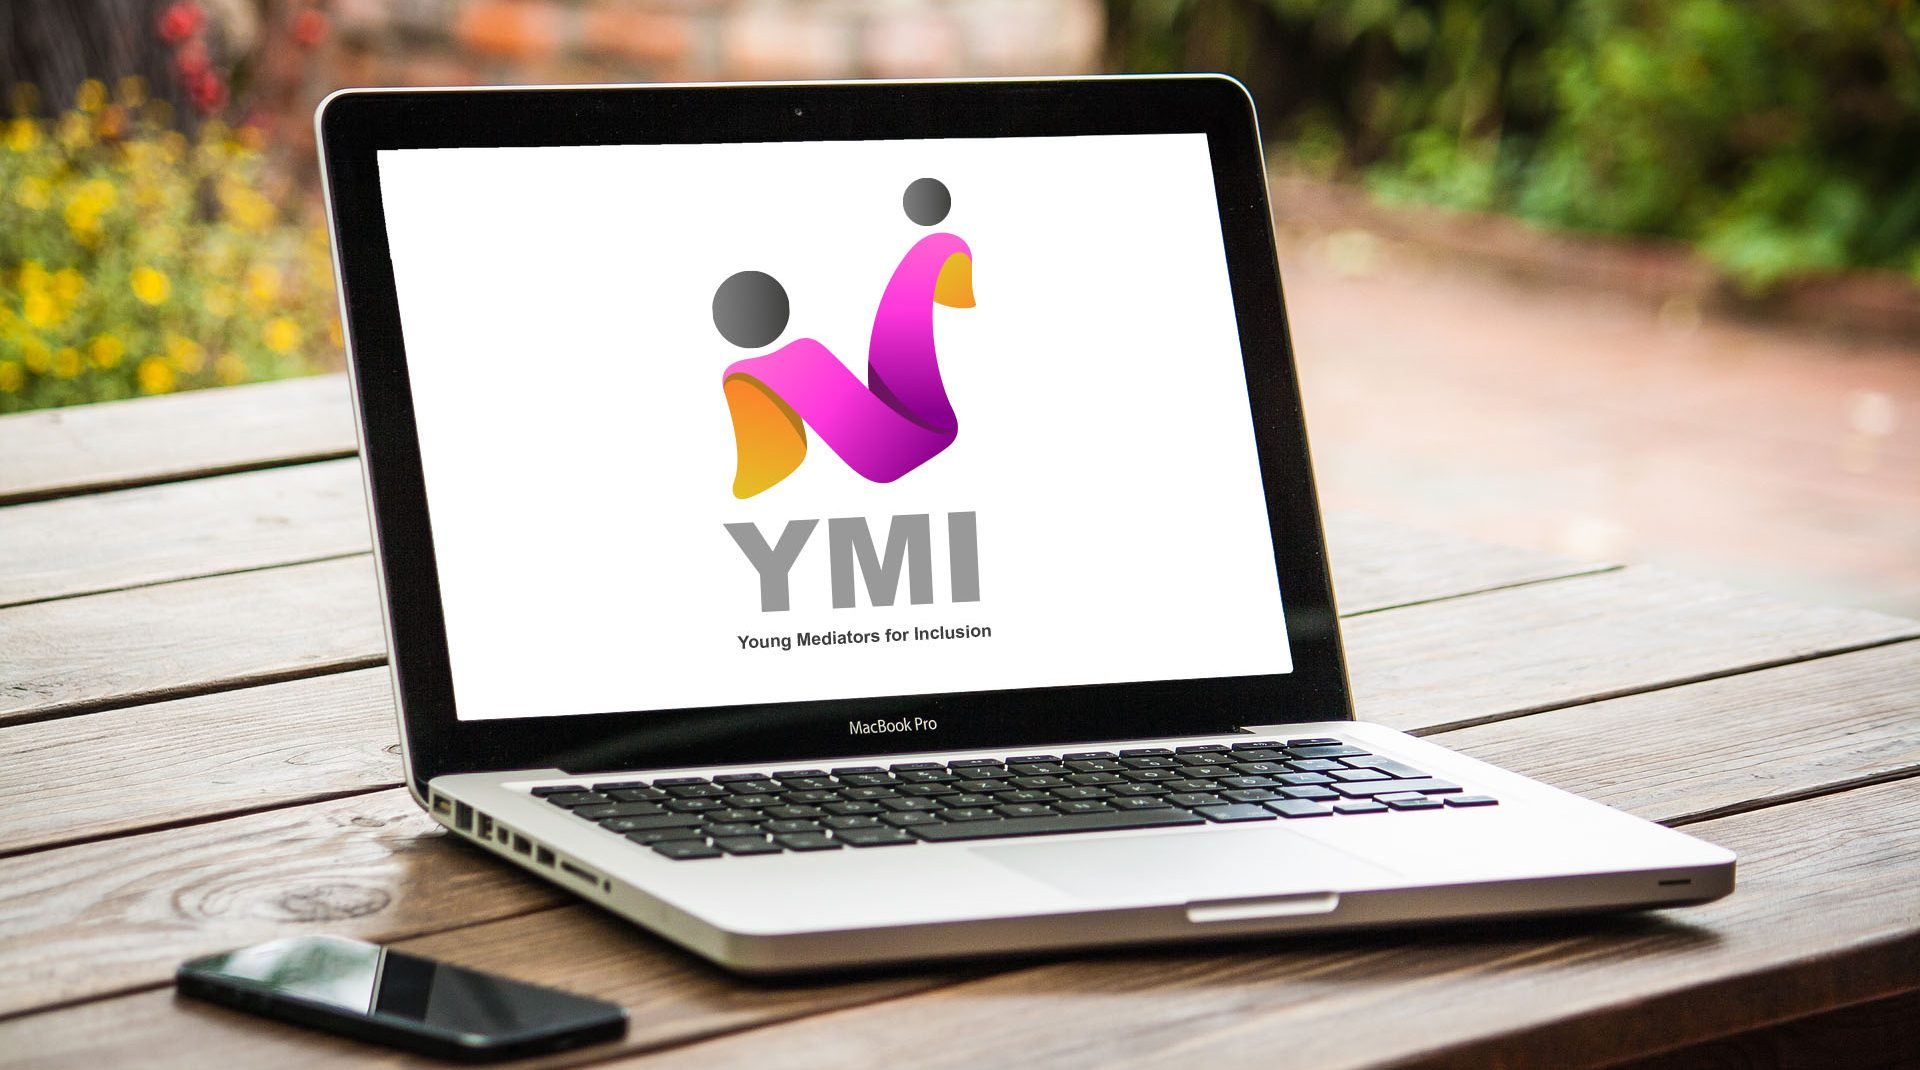 Dedicated project website for YMI goes live